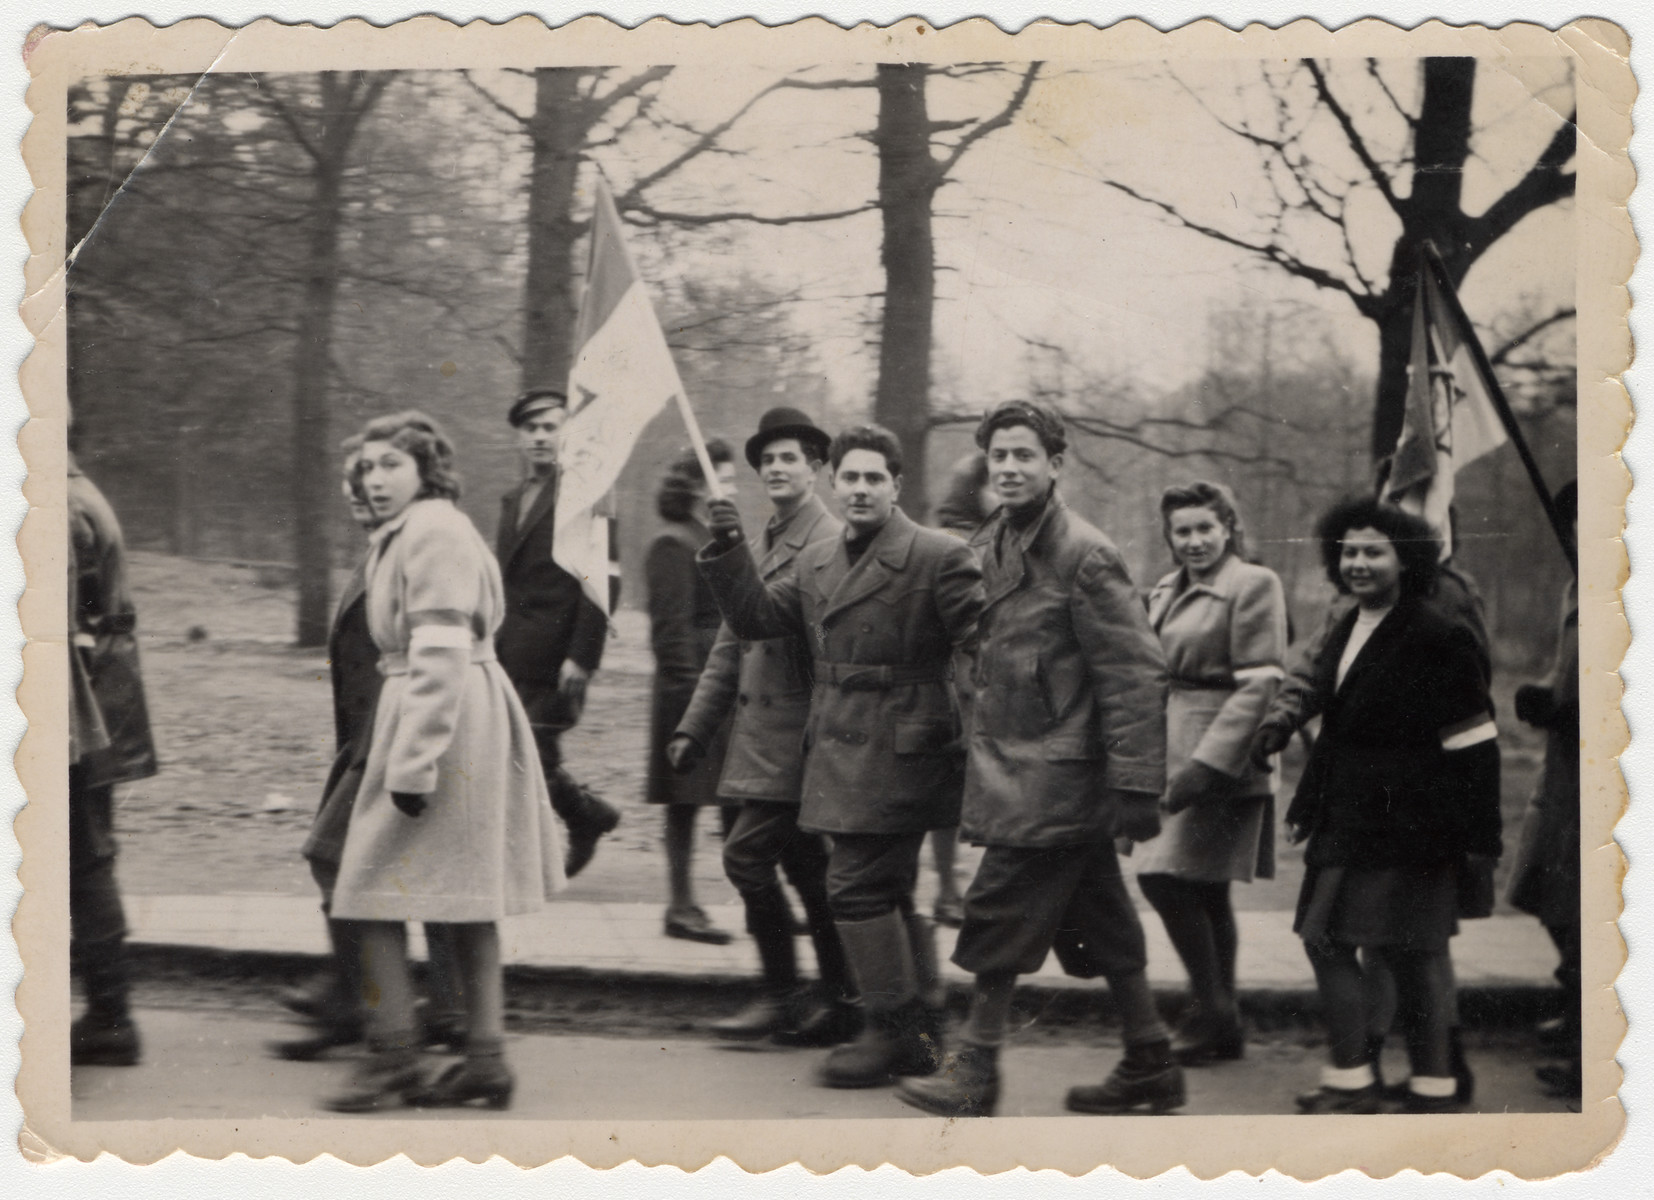 Zionist youth, one carrying a Zionist flag, march in a rally in the Bergen-Belsen displaced persons camp.